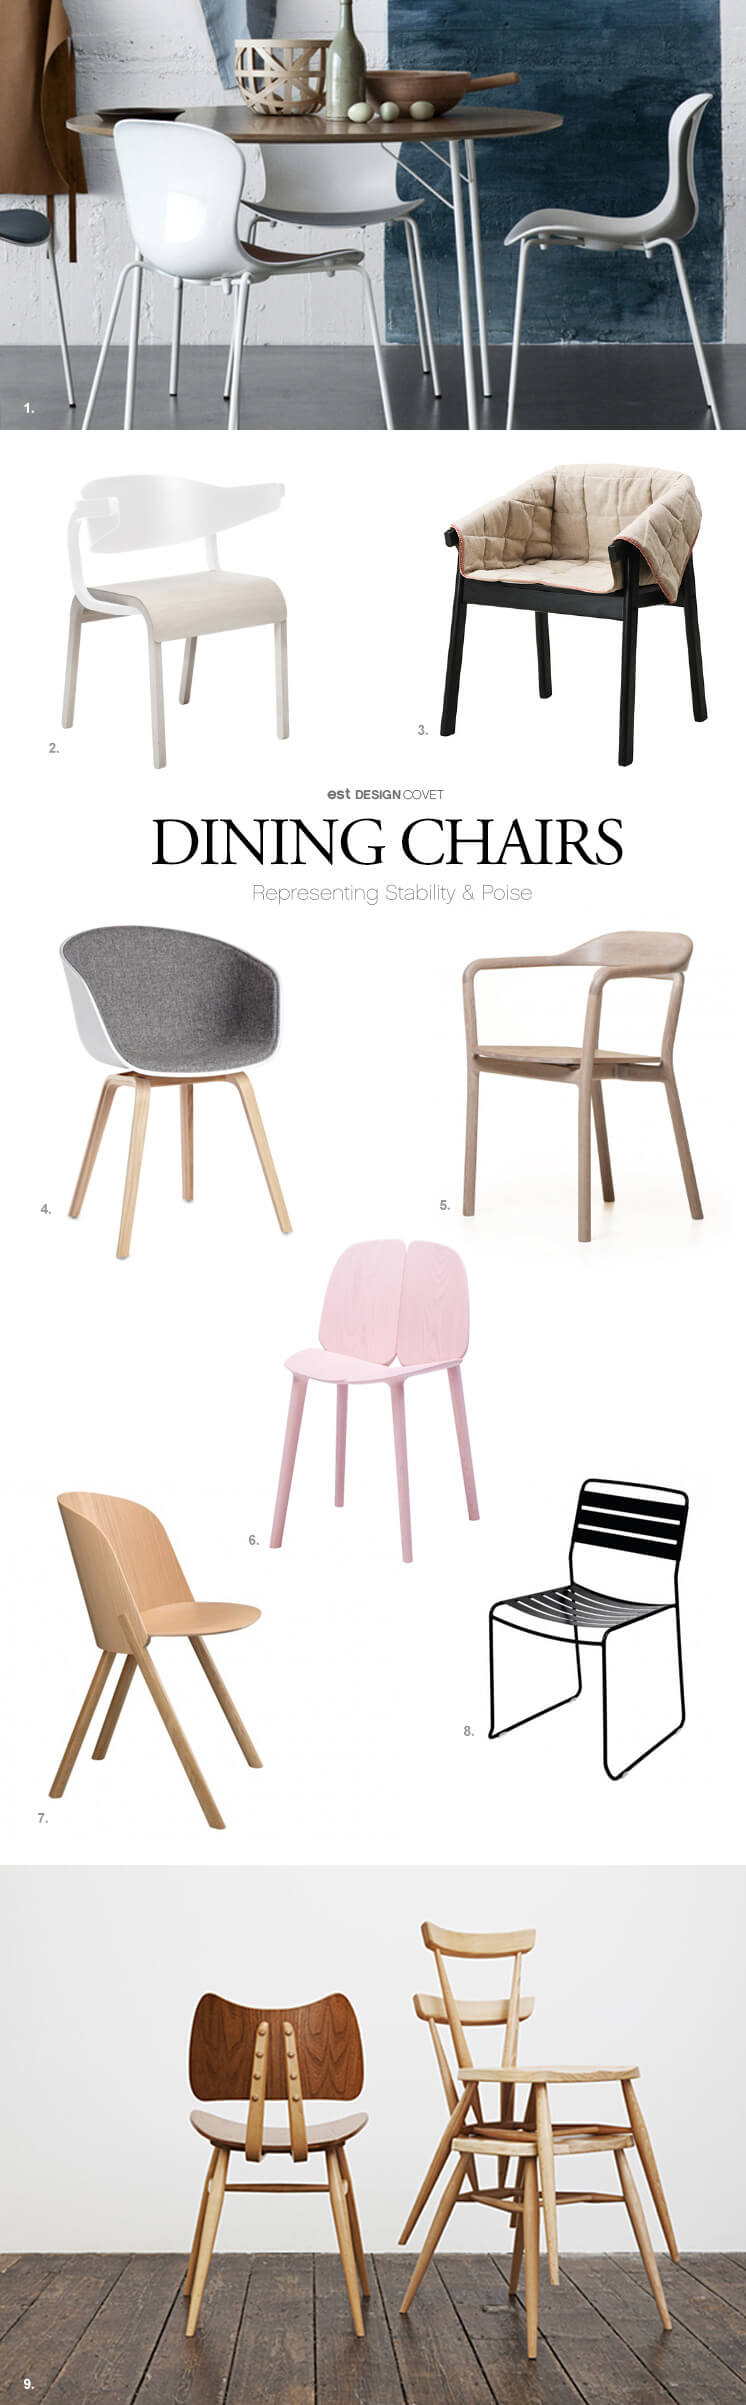 Est-Magazine-Sophie-France-dining-chairs-FIN